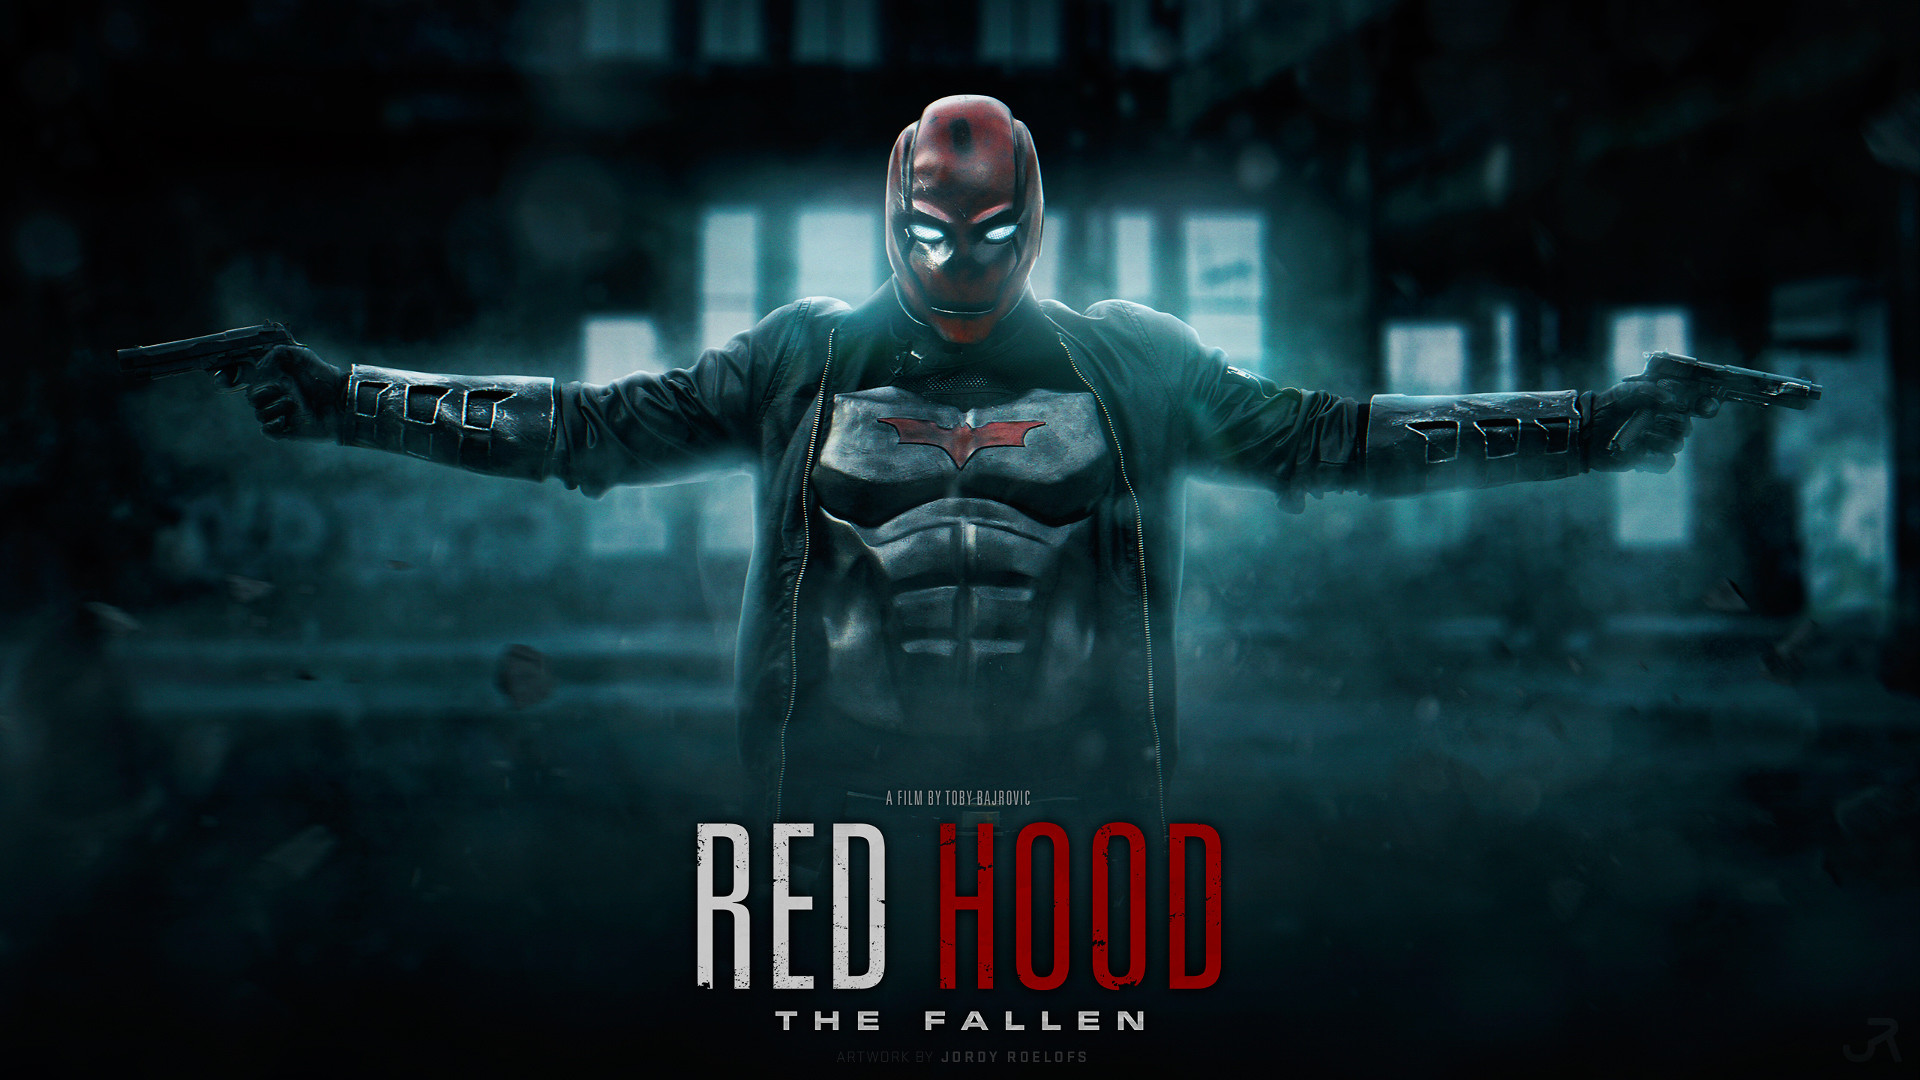 1920x1080 RED HOOD THE FALLEN - Wallpaper 1080P by visuasys